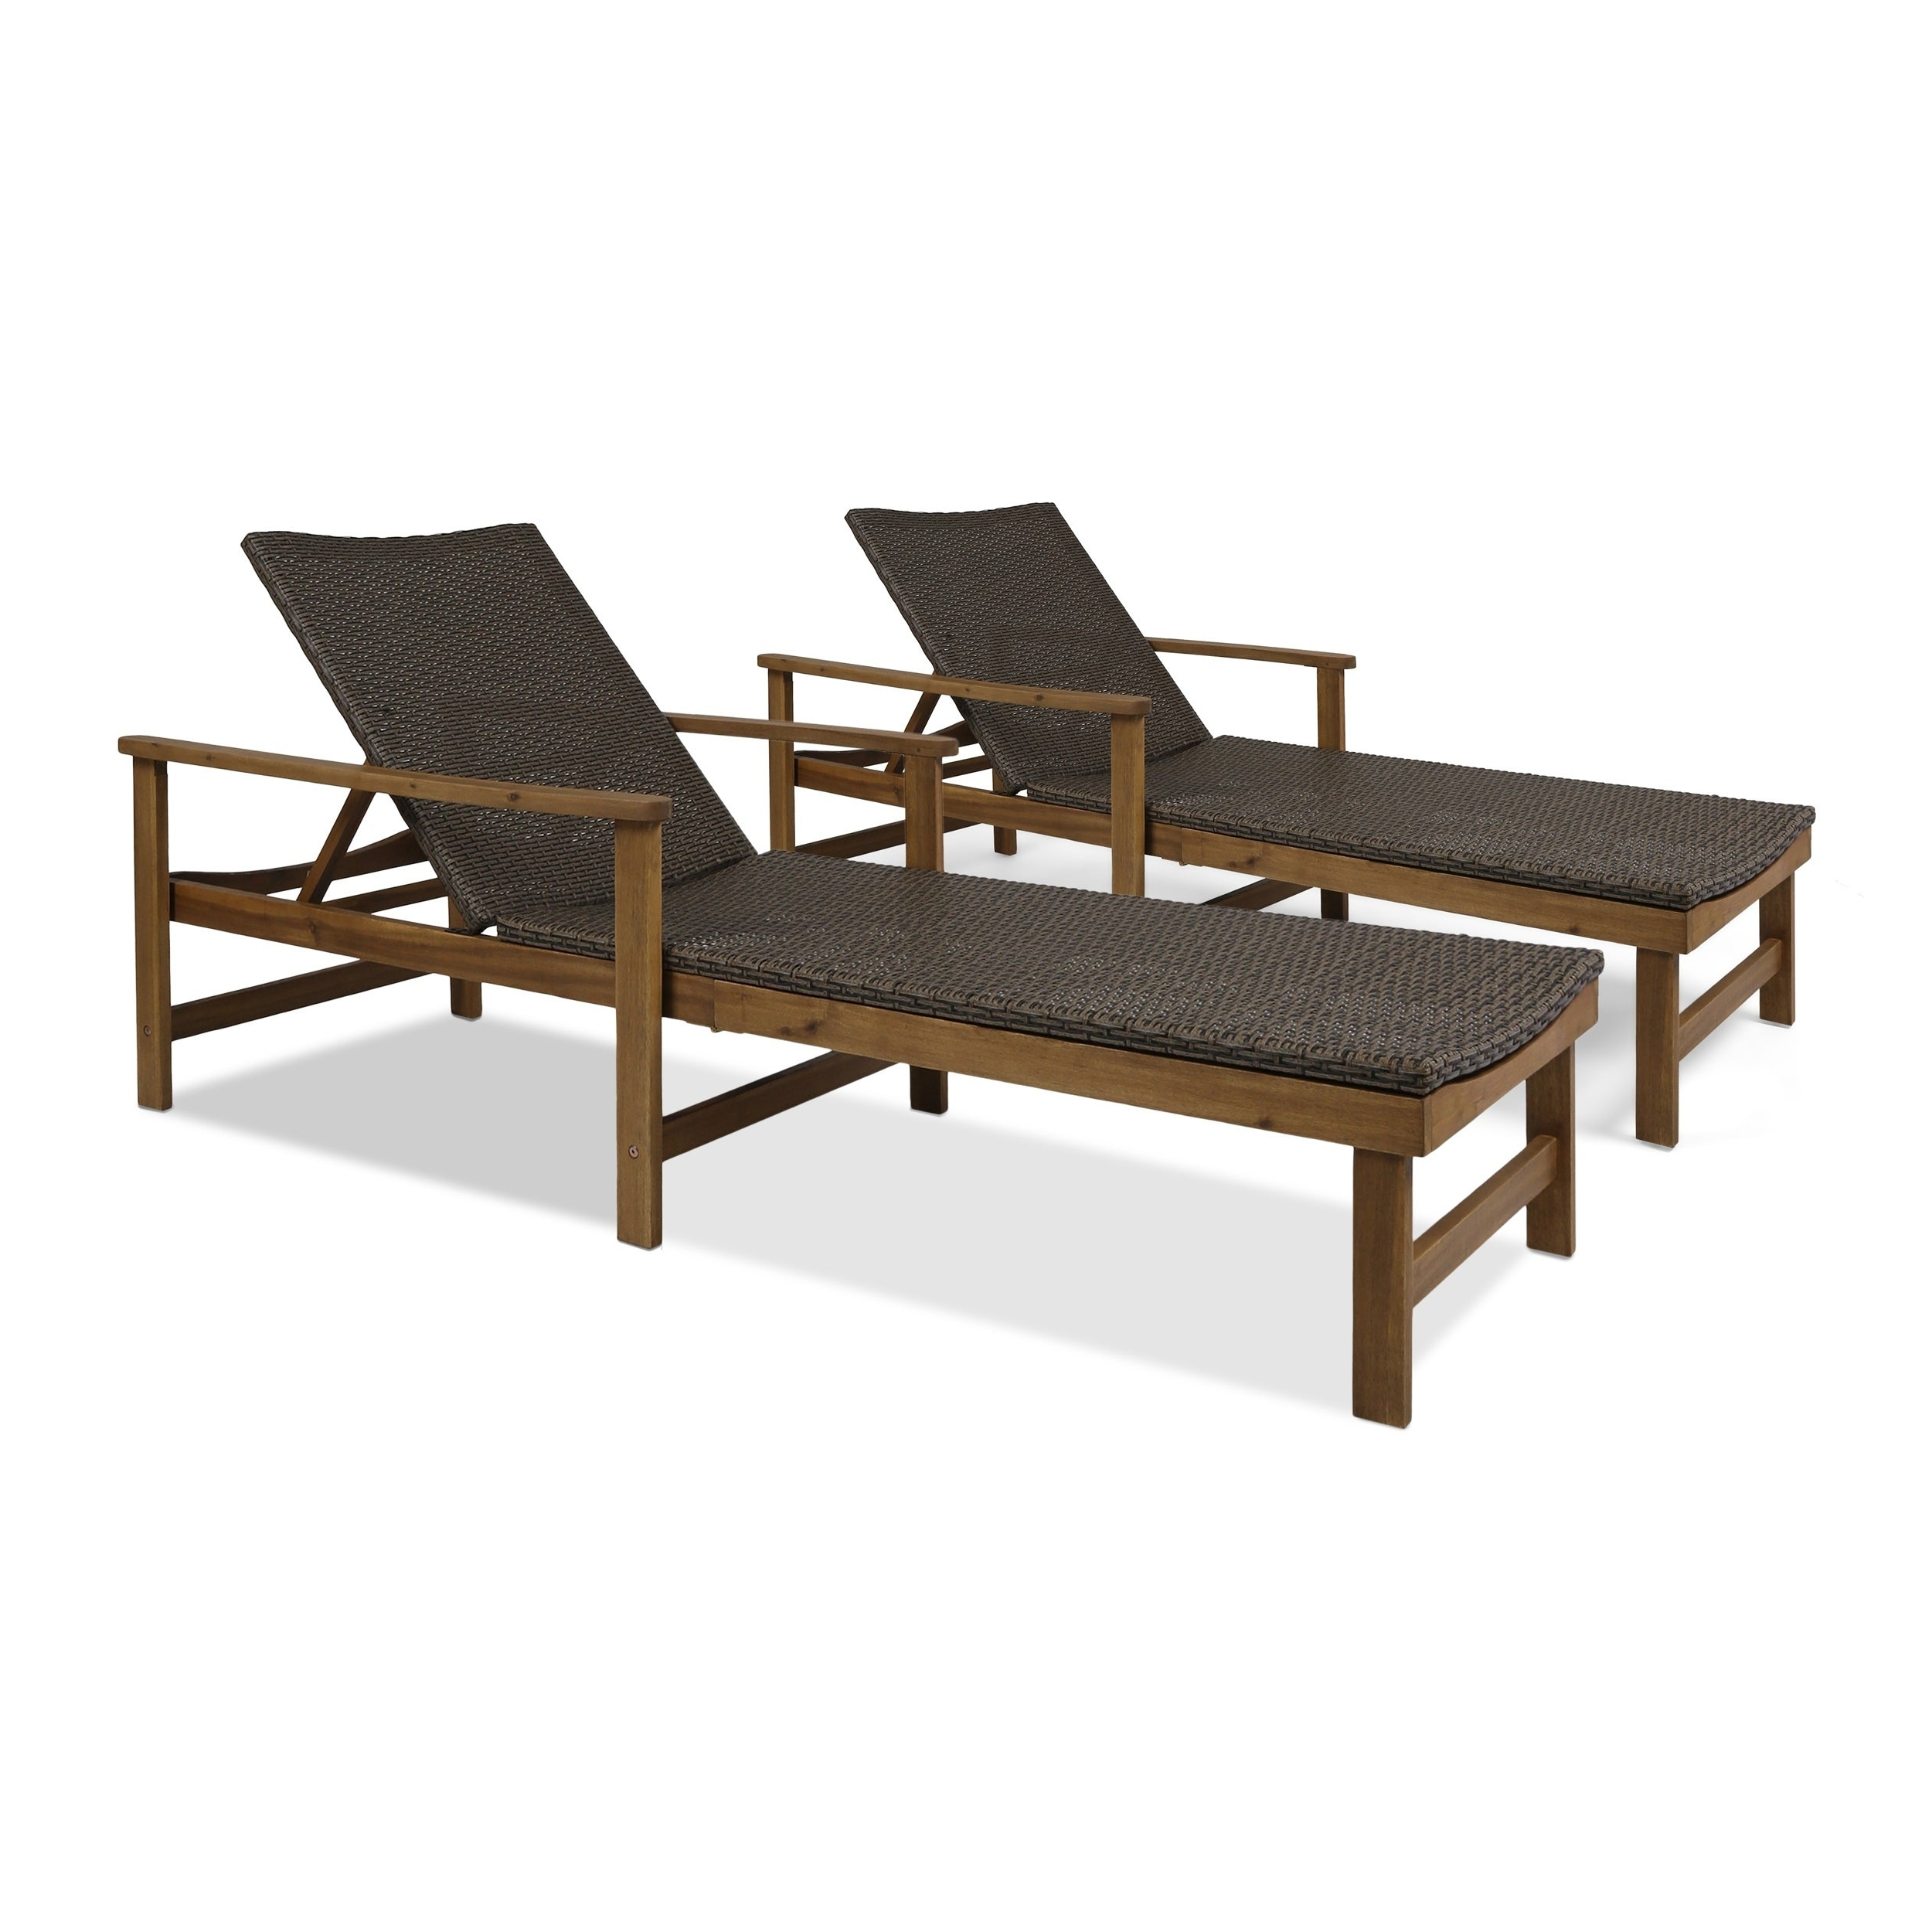 Outdoor Rustic Acacia Wood Chaise Lounges With Wicker Seats With Newest Hampton Outdoor Chaise Lounges Acacia Wood And Wicker (Set Of 2) Christopher Knight Home (View 19 of 25)